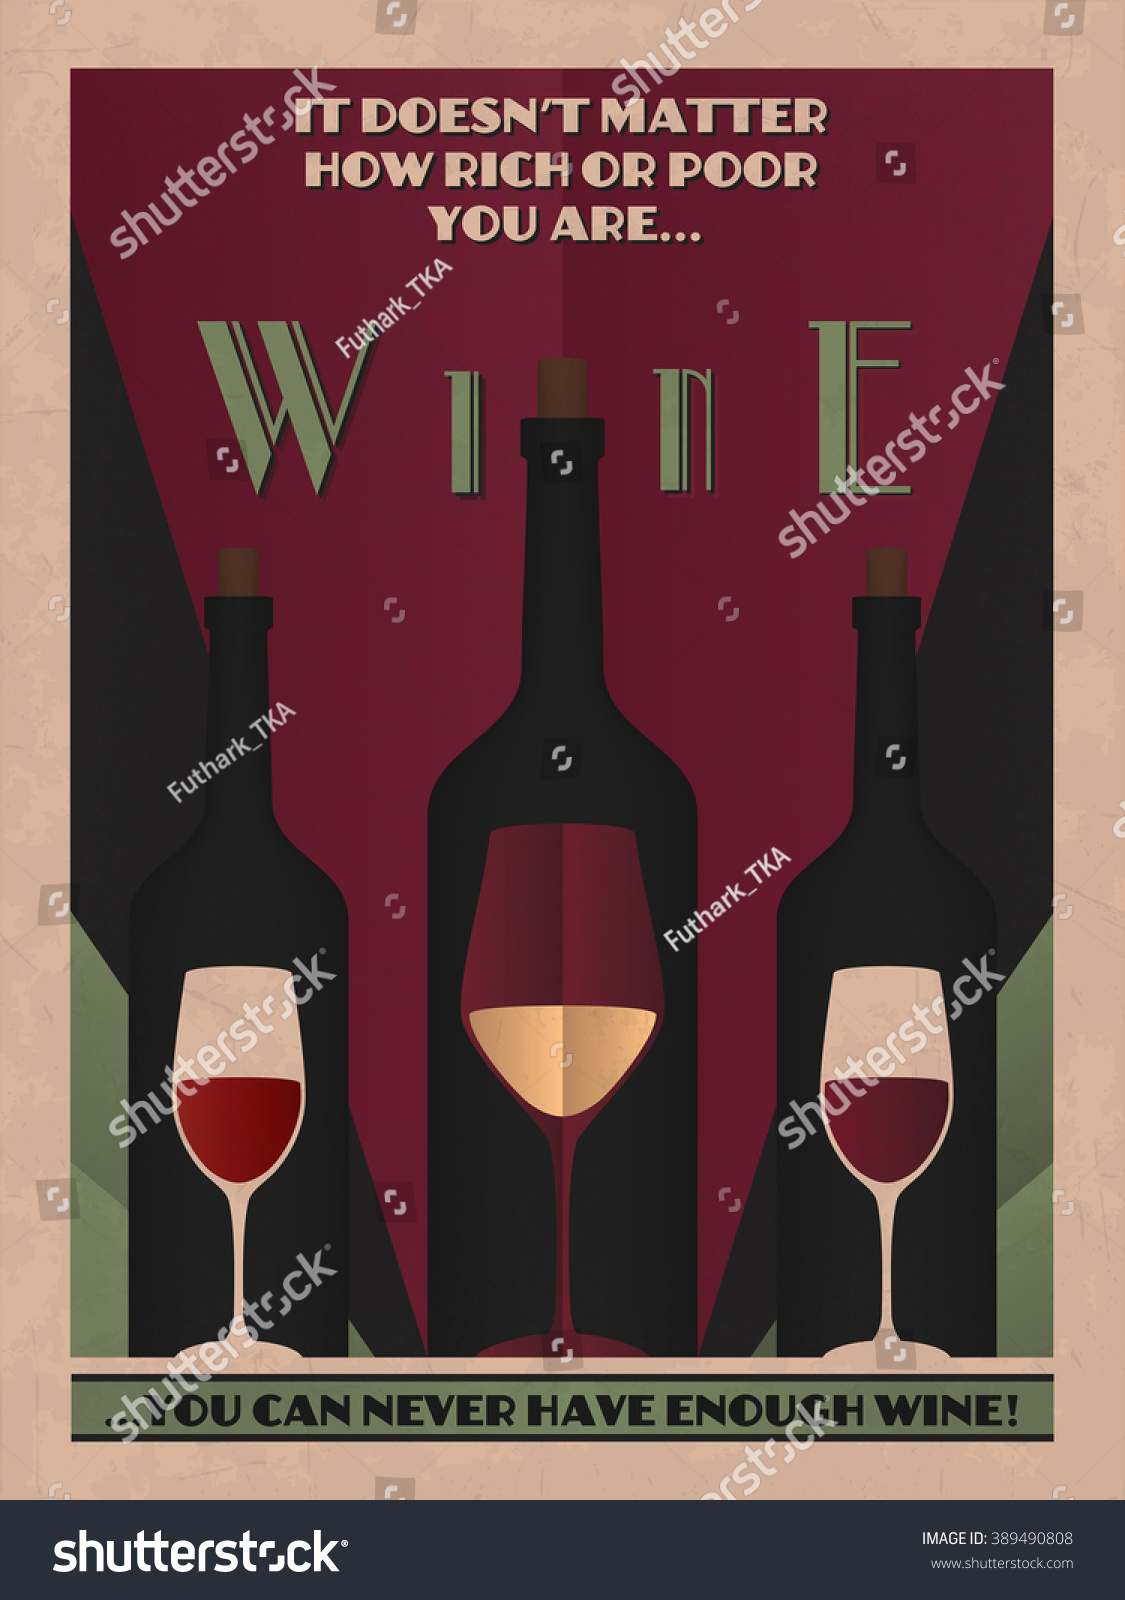 Available Here Etsy Vintage Poster Art Stock Vector Royalty Free 389490808